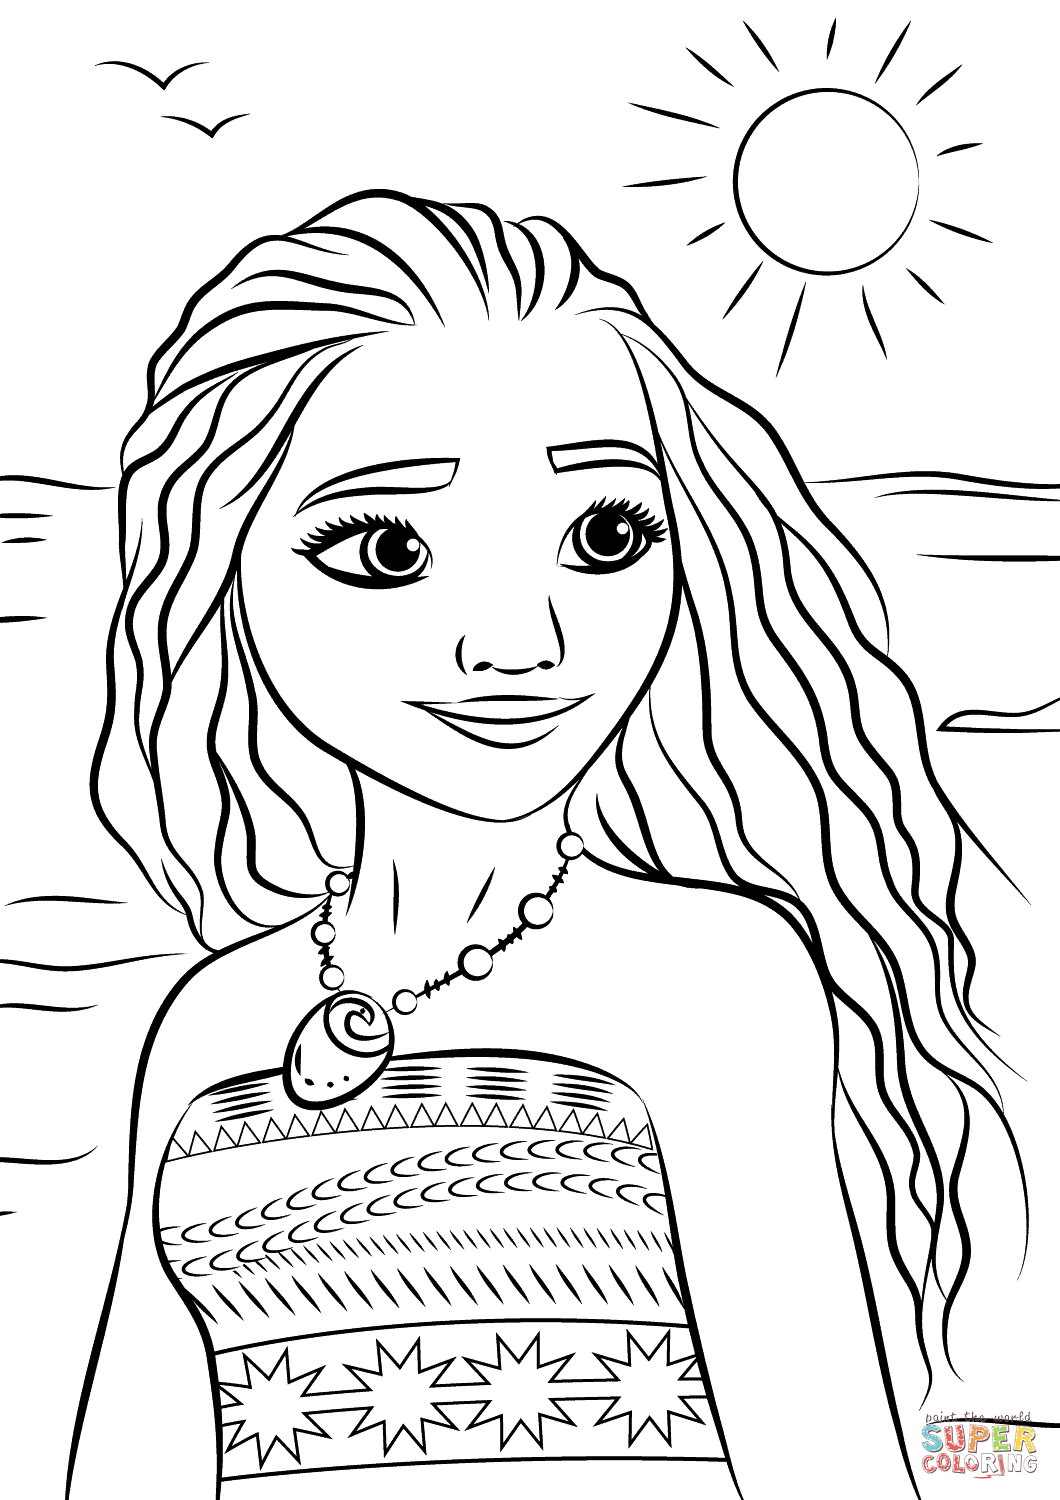 Princess moana portrait disney coloring pages printable and coloring book to print for free find more coloring pages online for kids and adults of princess